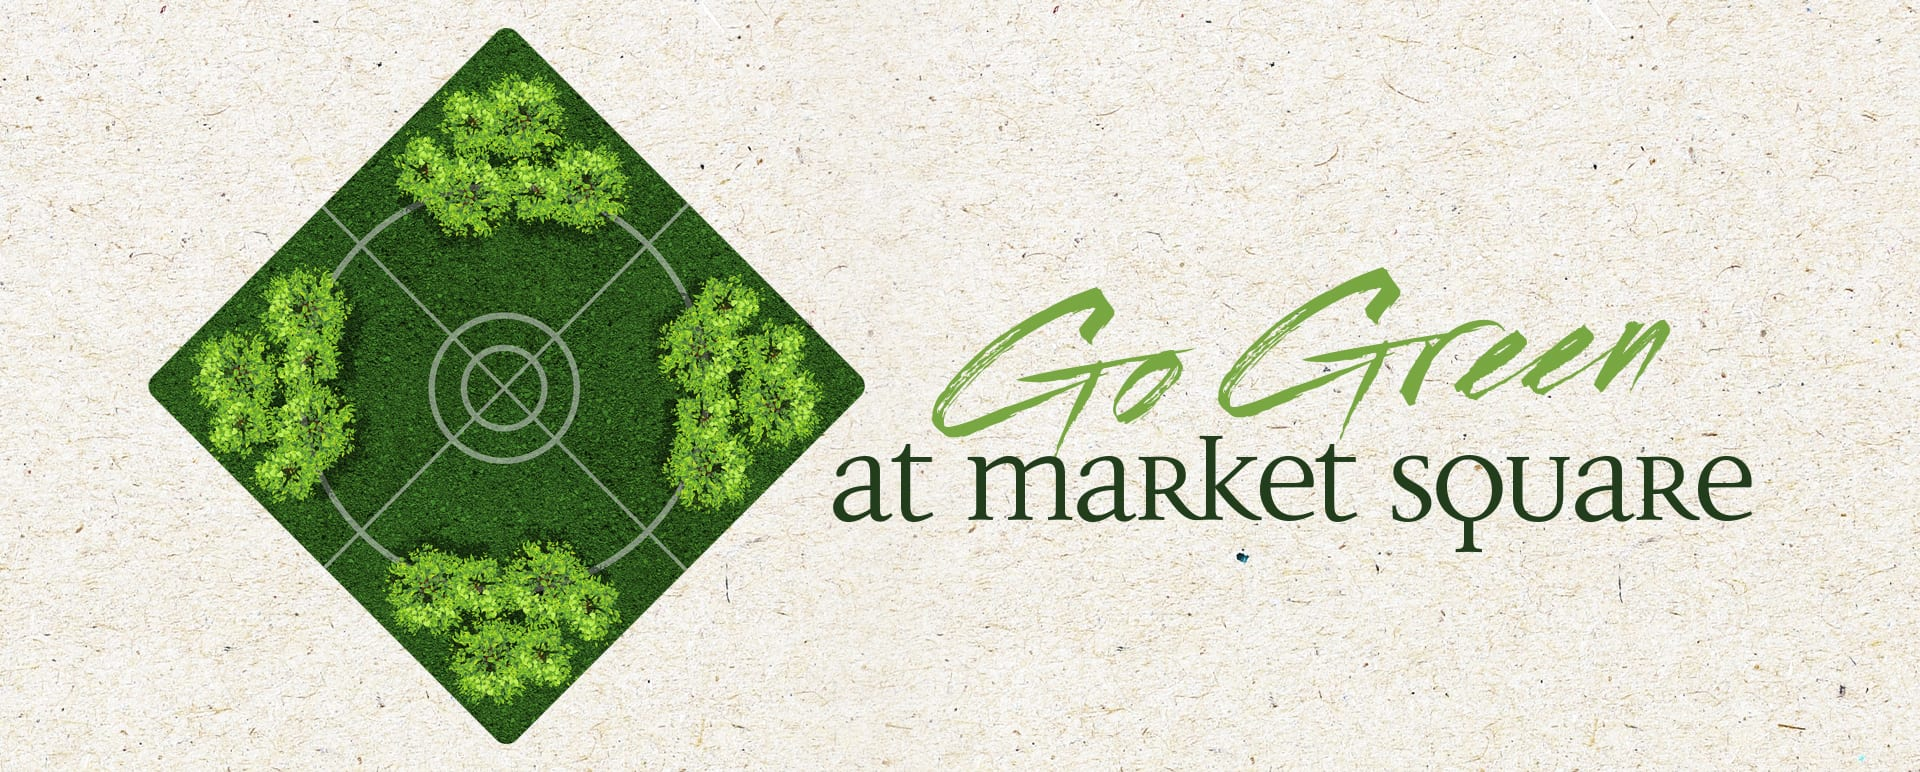 Go Green in Market Square